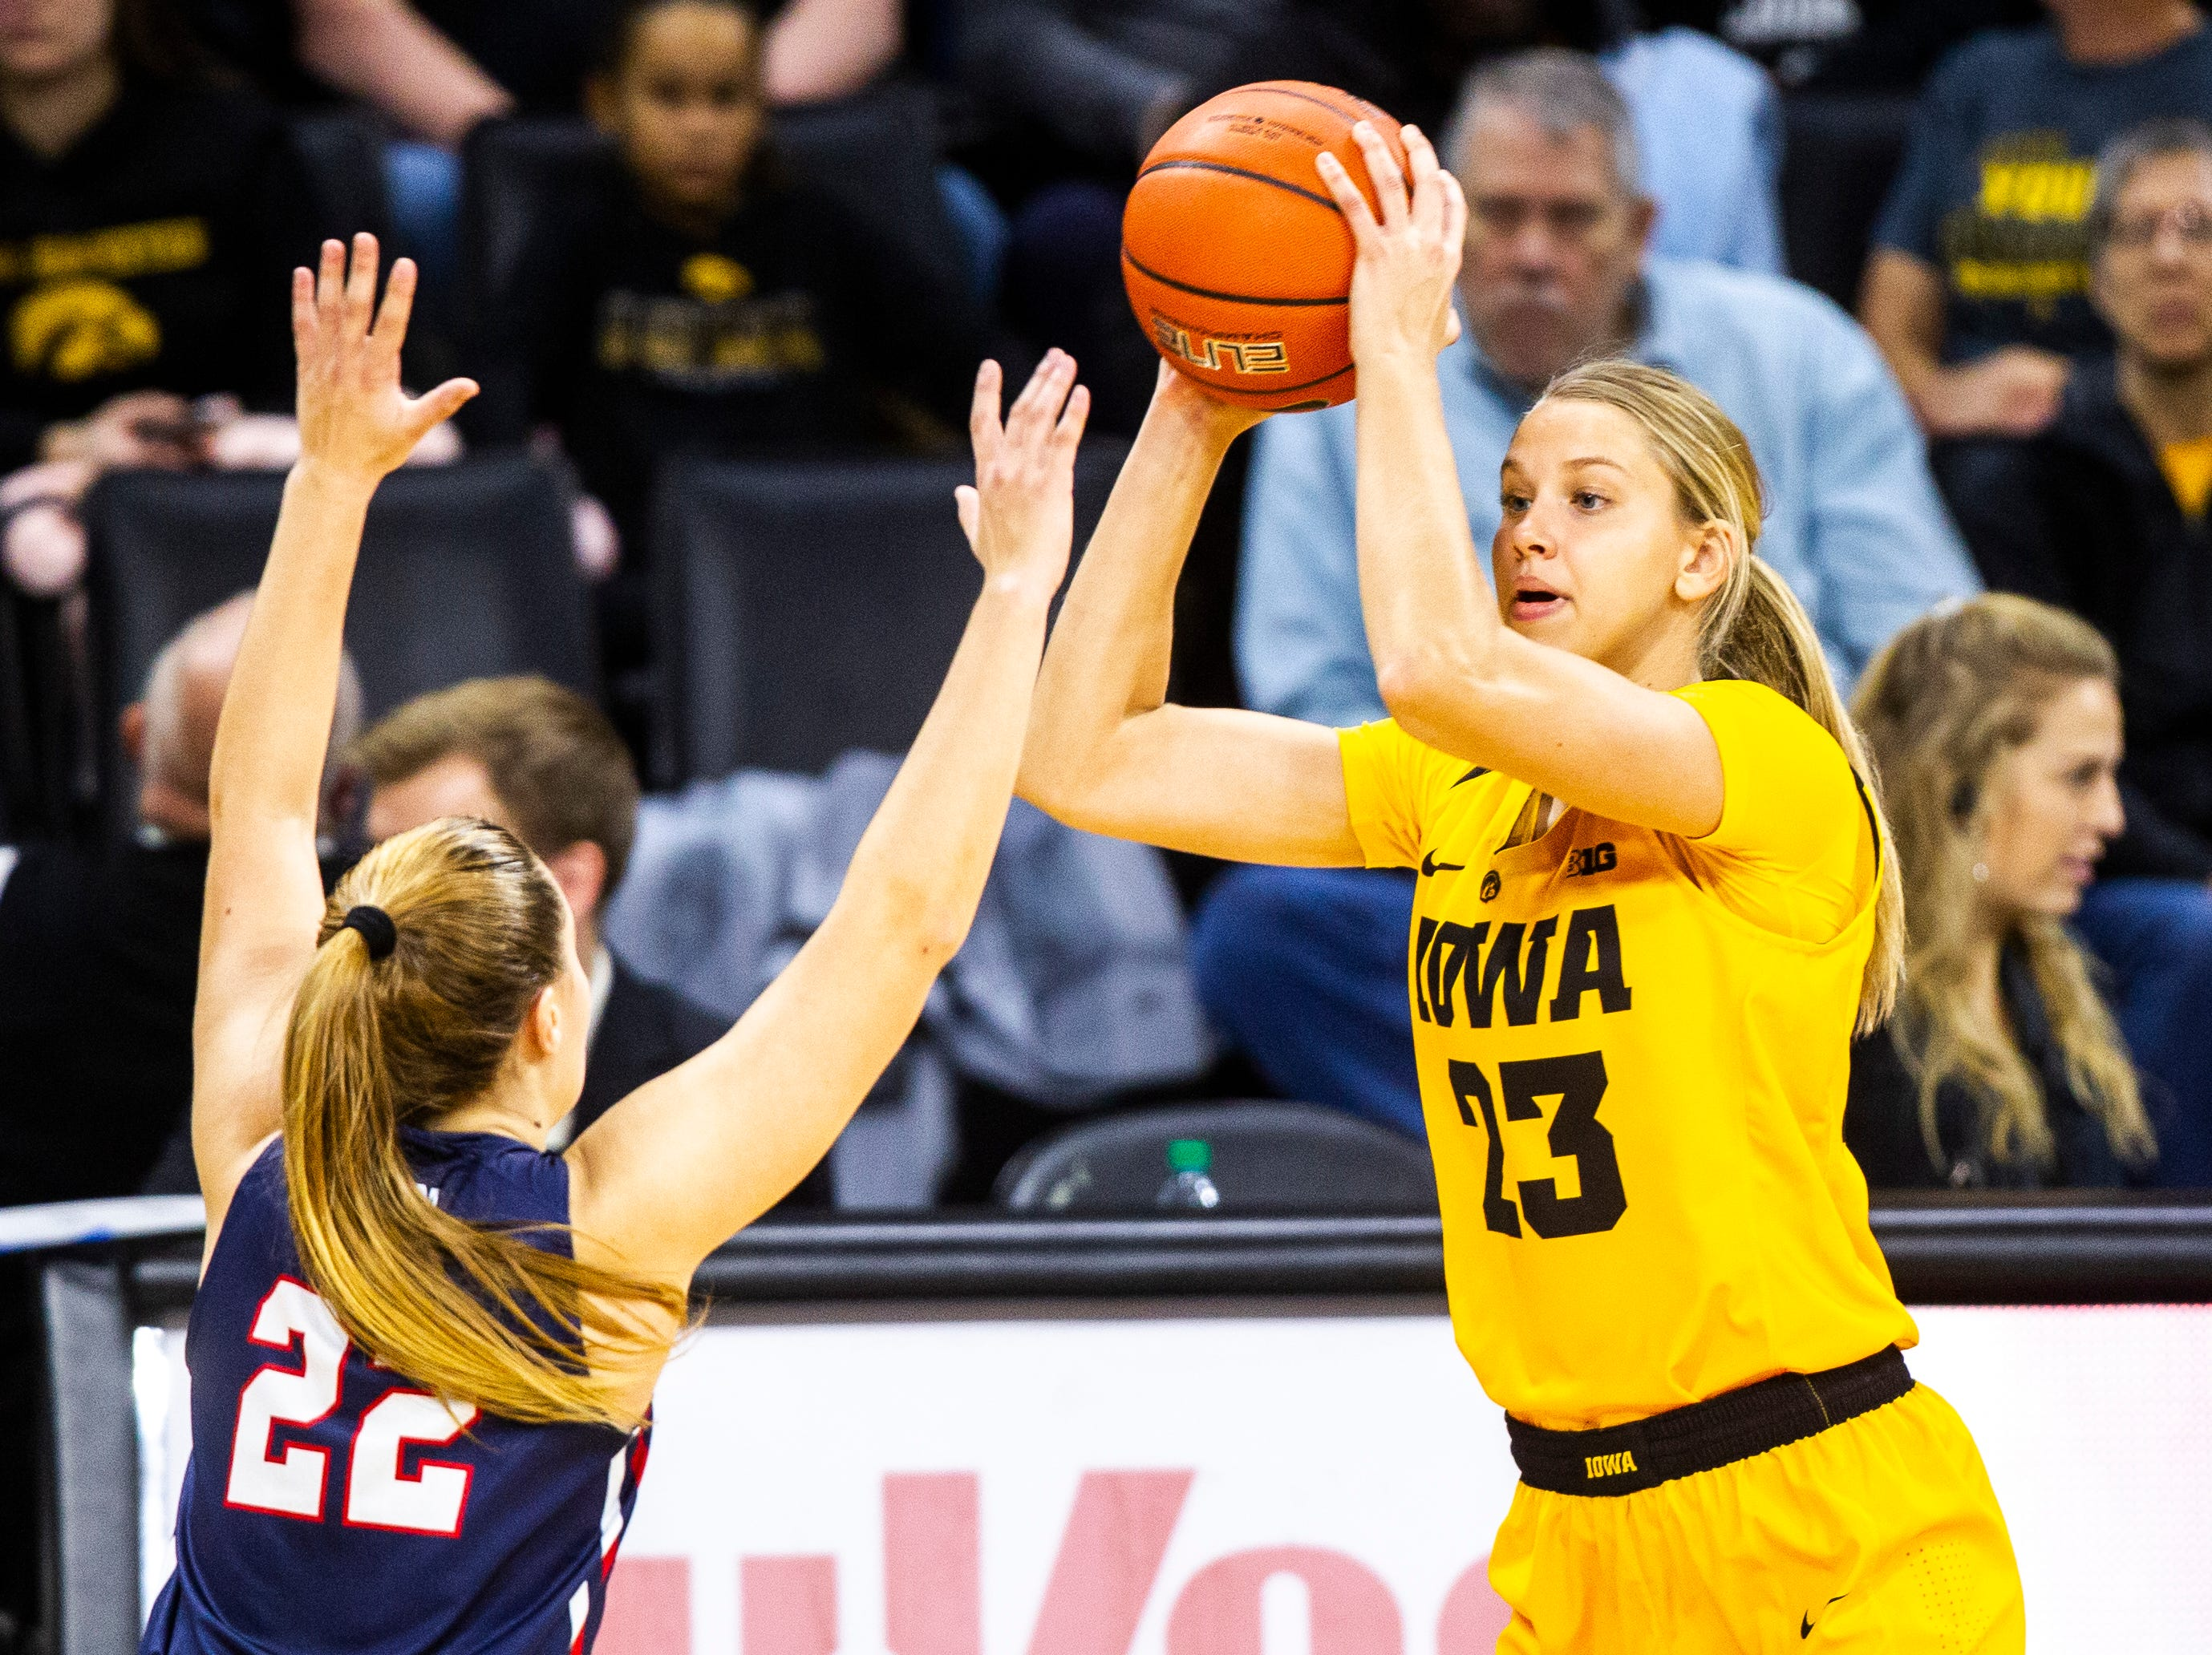 Iowa forward Logan Cook (23) looks to shoot during a NCAA women's basketball game on Sunday, Dec. 2, 2018, at Carver-Hawkeye Arena in Iowa City.